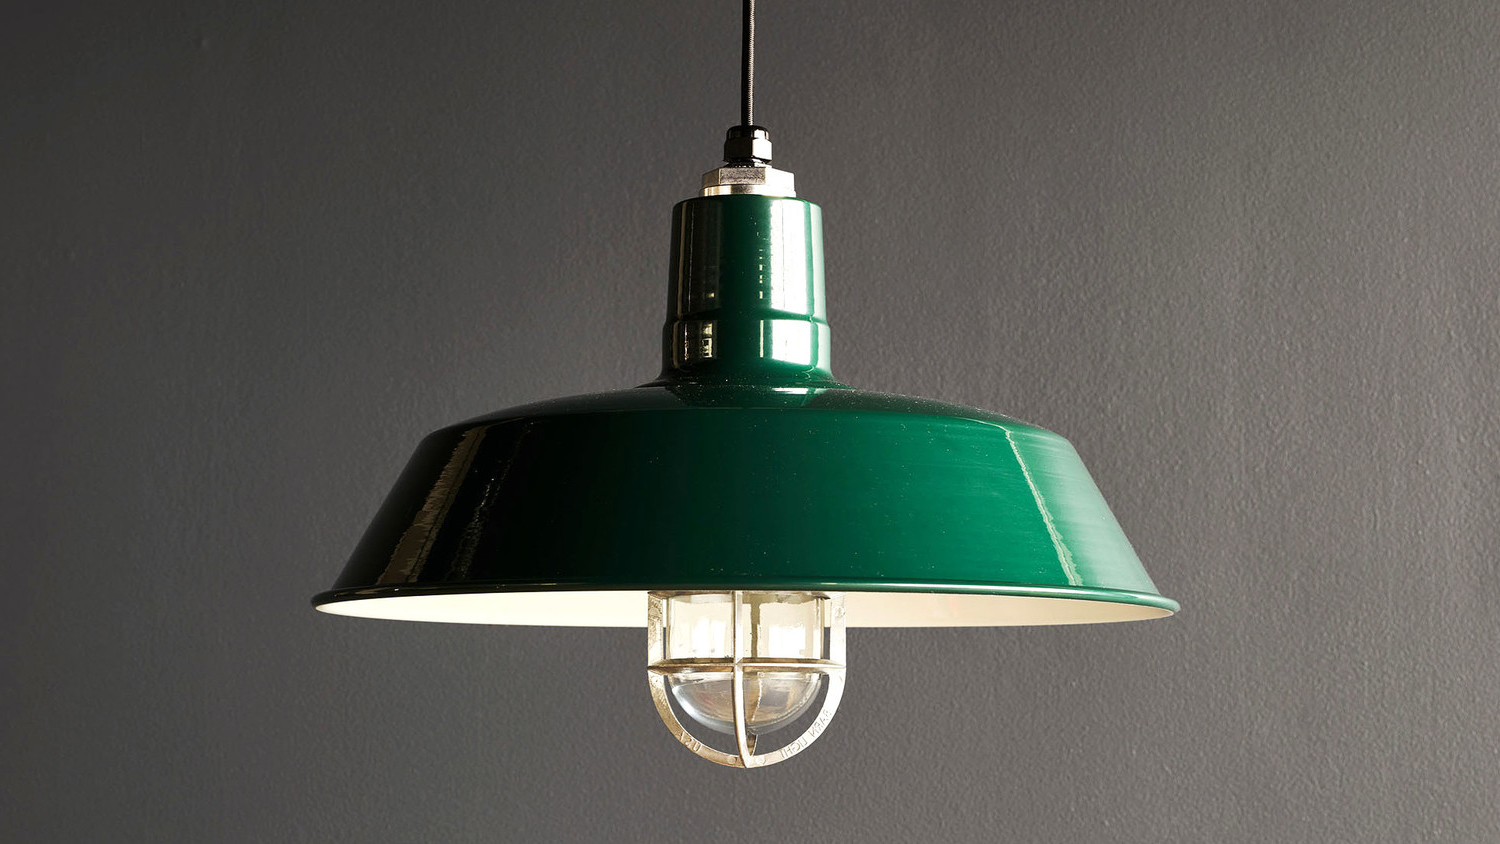 2020 Check Out These Major Deals On Burslem 3 Light Single Drum Inside Burslem 3 Light Single Drum Pendants (View 2 of 20)